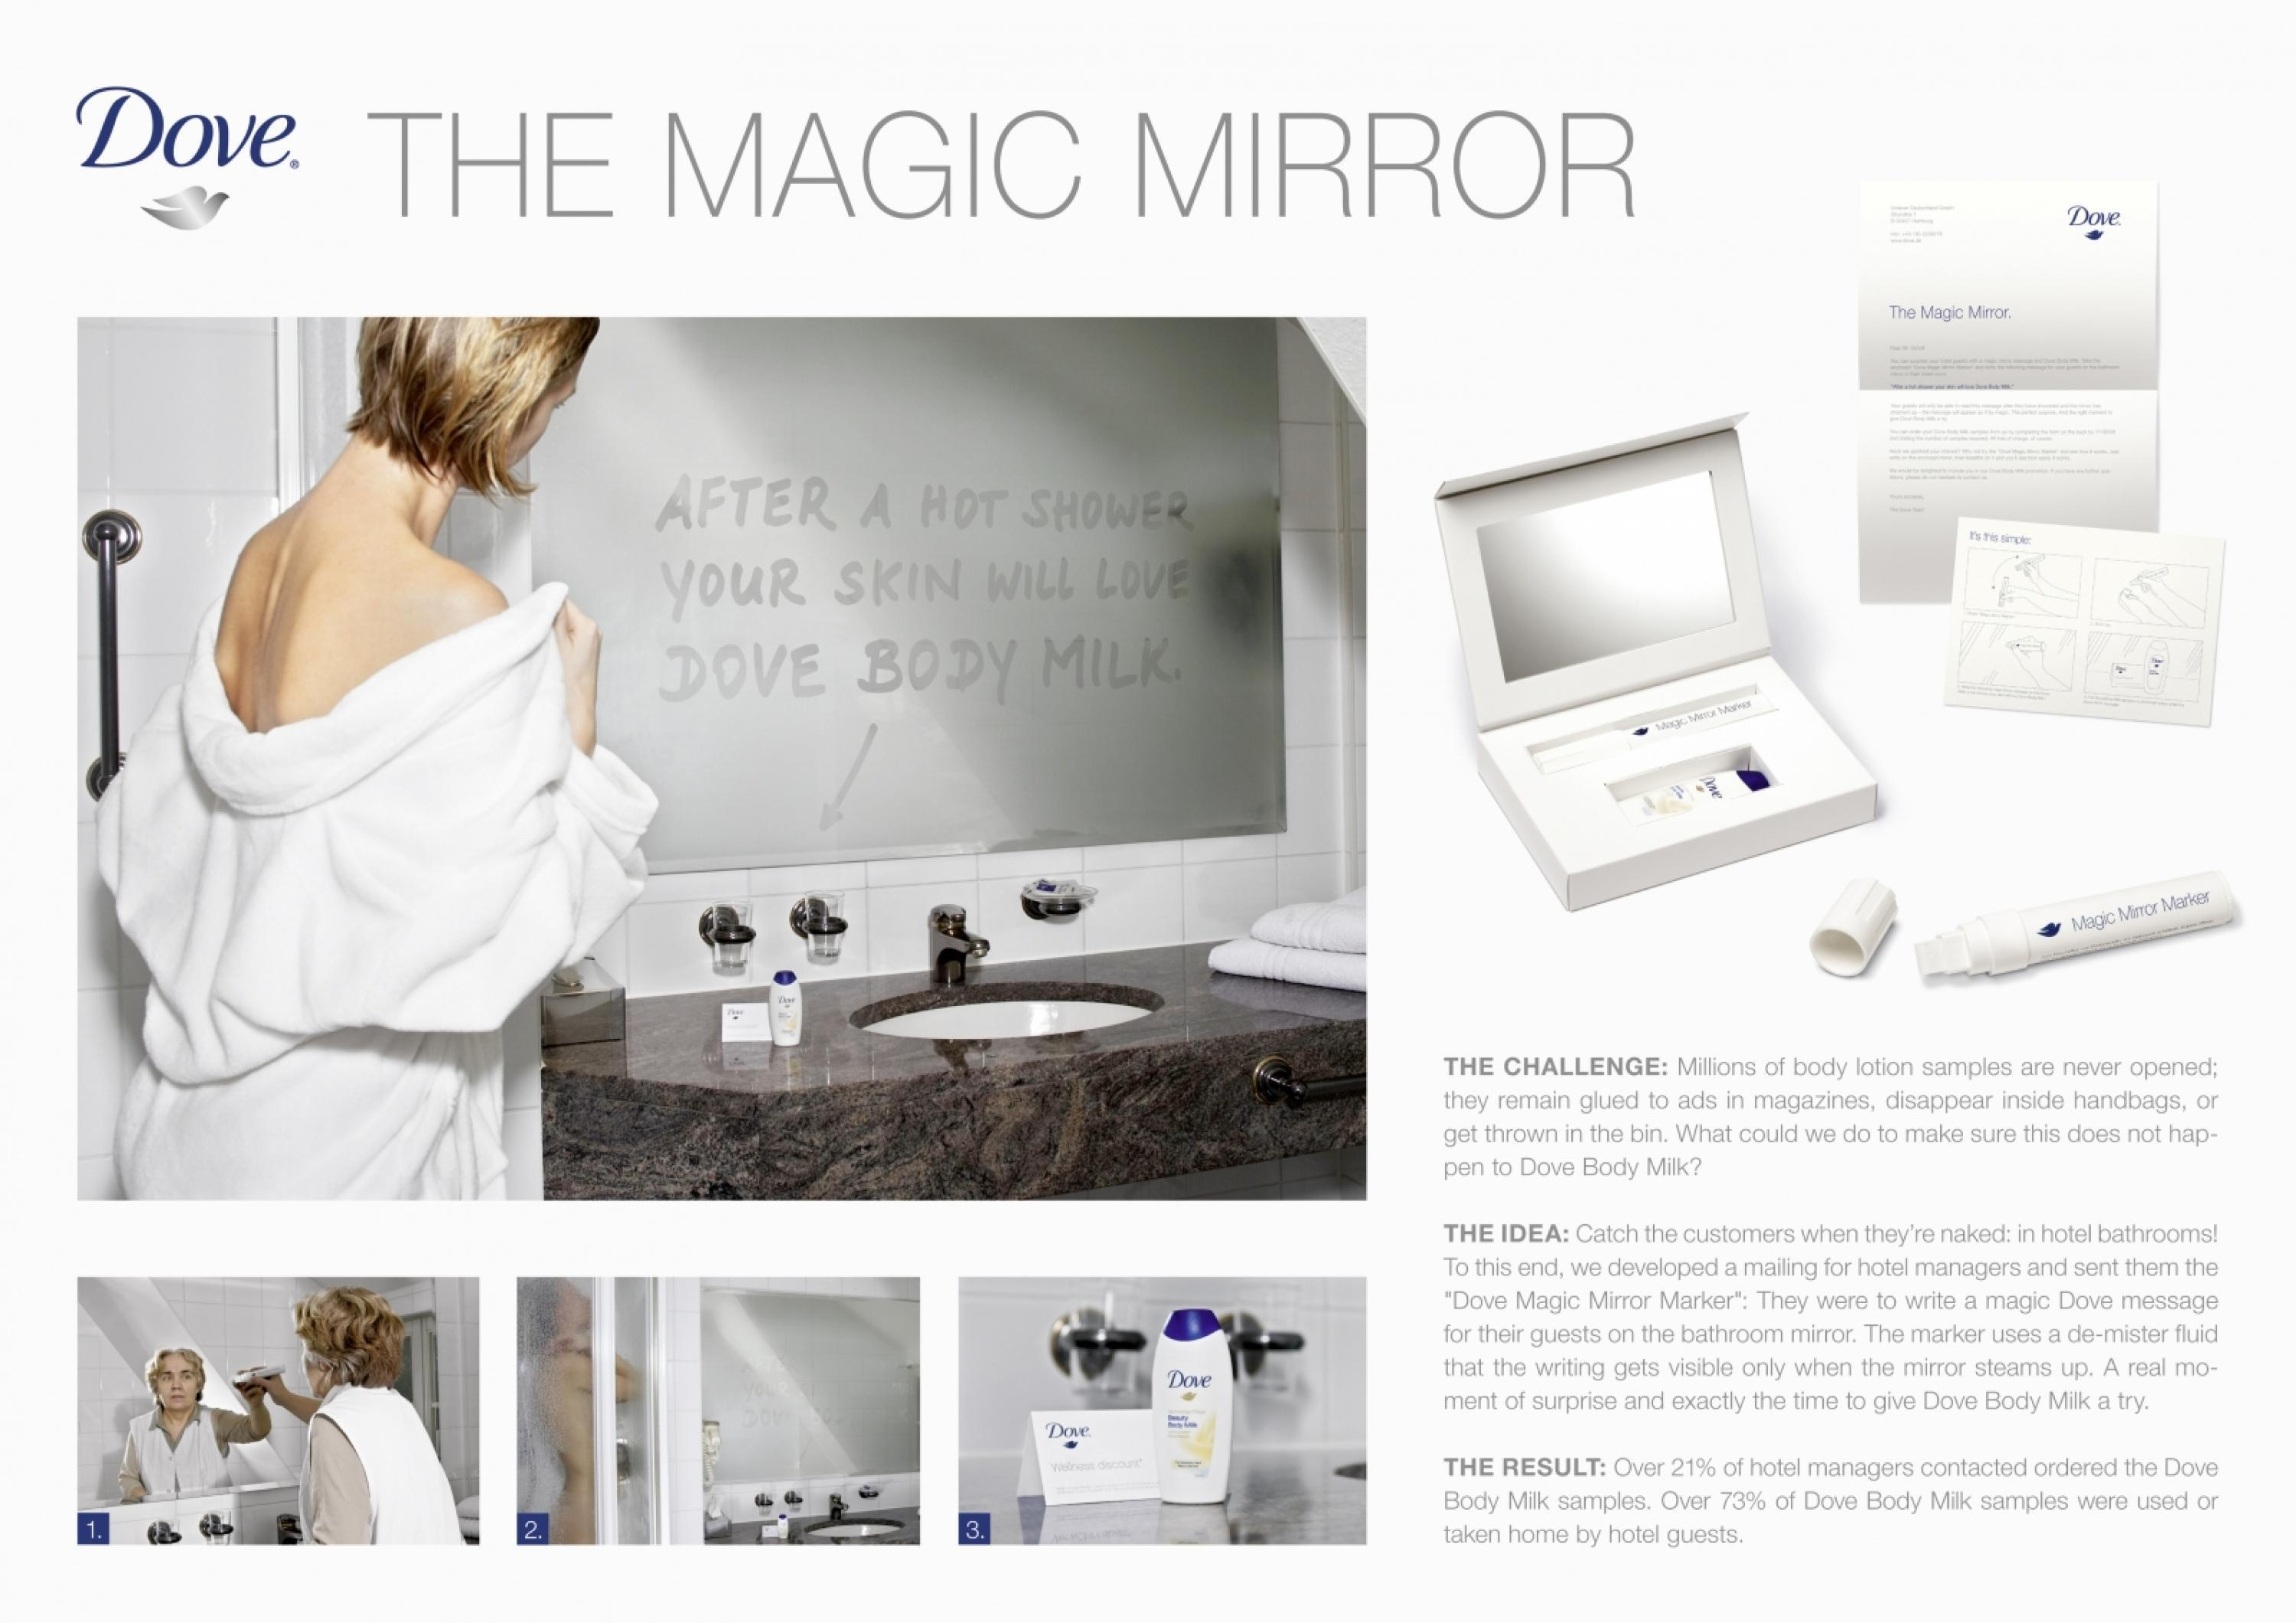 unilever dove body lotion magic mirror mailing the magic mirror